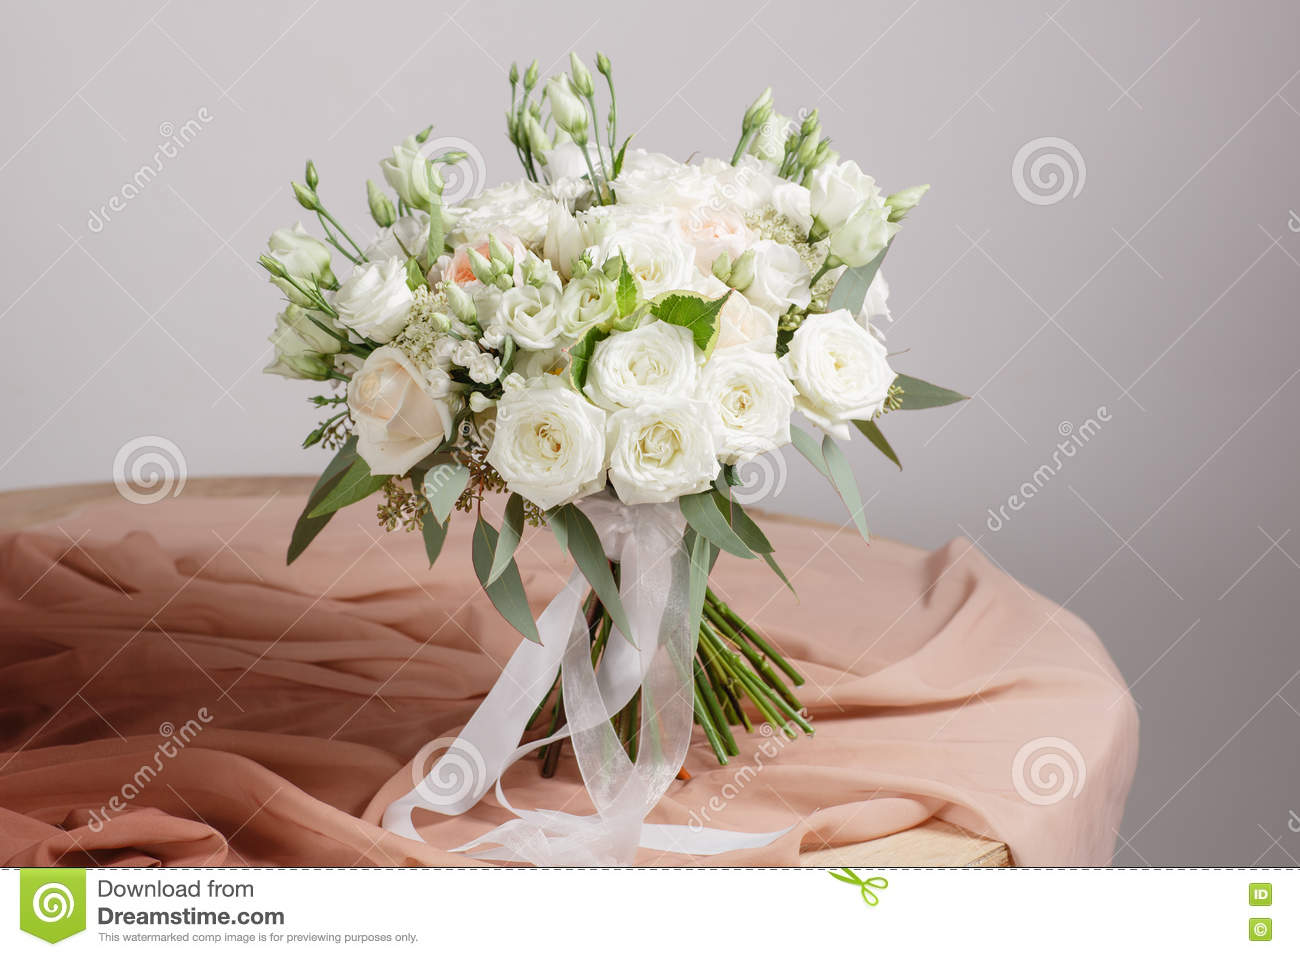 Hydrangea Rich Bouquet Vintage Floristic Background Colorful Roses Antique Scissors And A Rope On An Old Wooden Table Stock Image Image Of Antique Floral 75744985